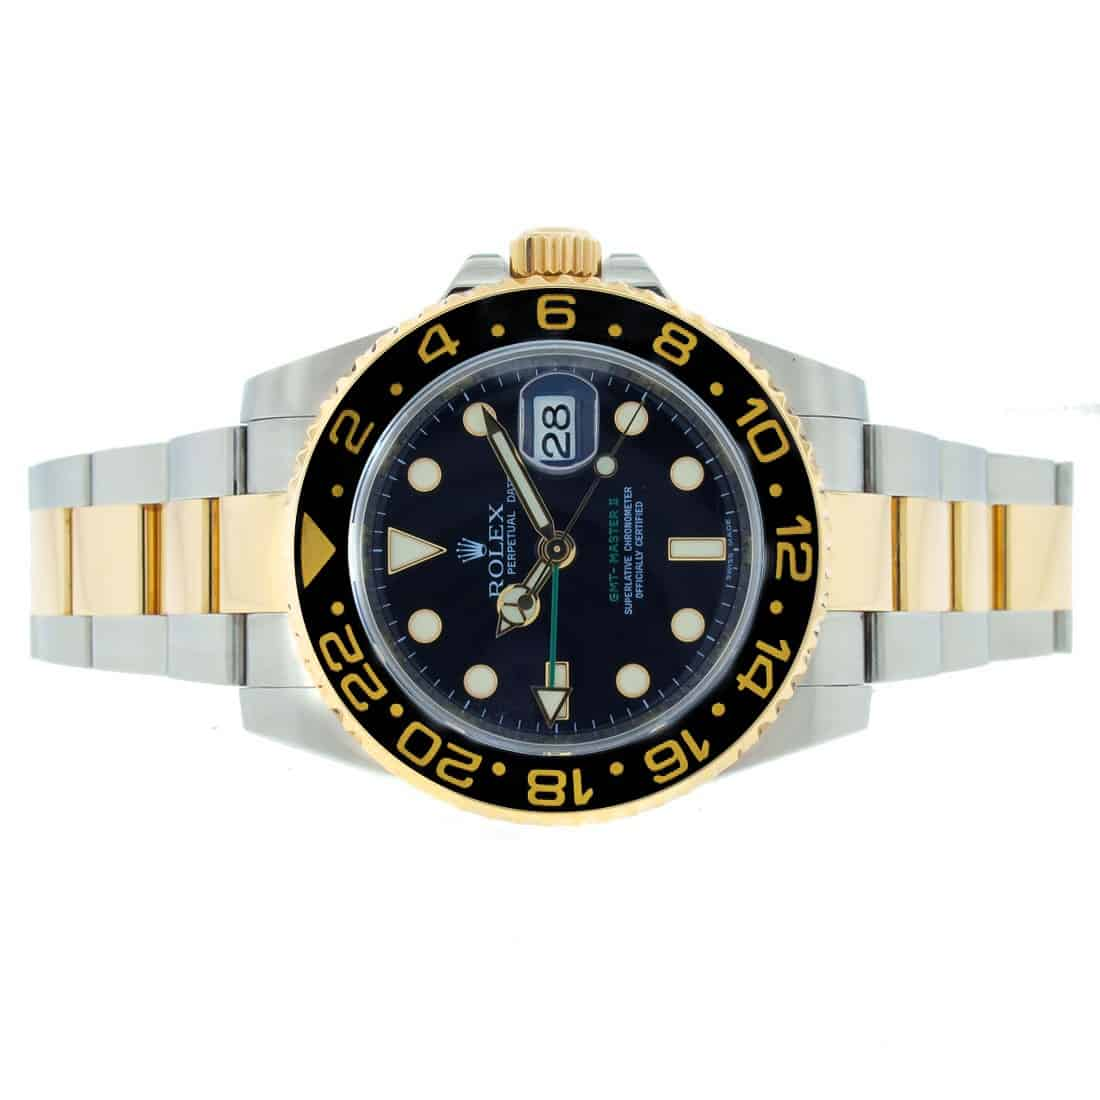 GMT Master II 04 side